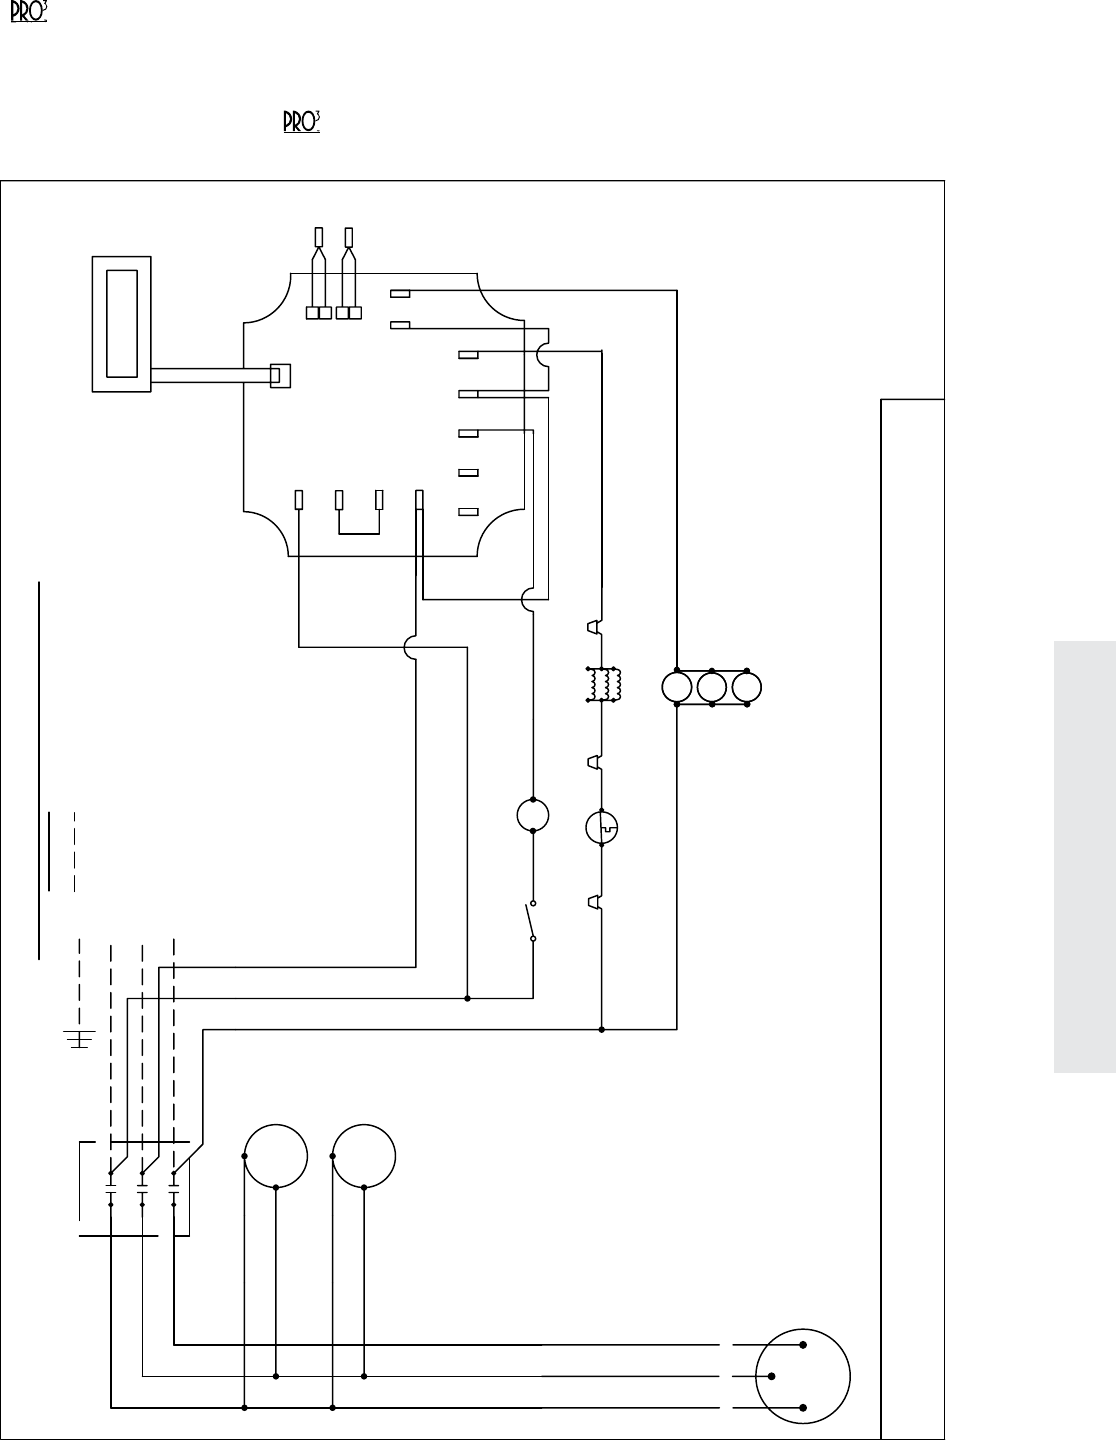 b8616a9a 7649 411a b648 d6245cba7e20 bg13 page 19 of heatcraft refrigeration products refrigerator h im 82b heatcraft freezer wiring diagram at webbmarketing.co